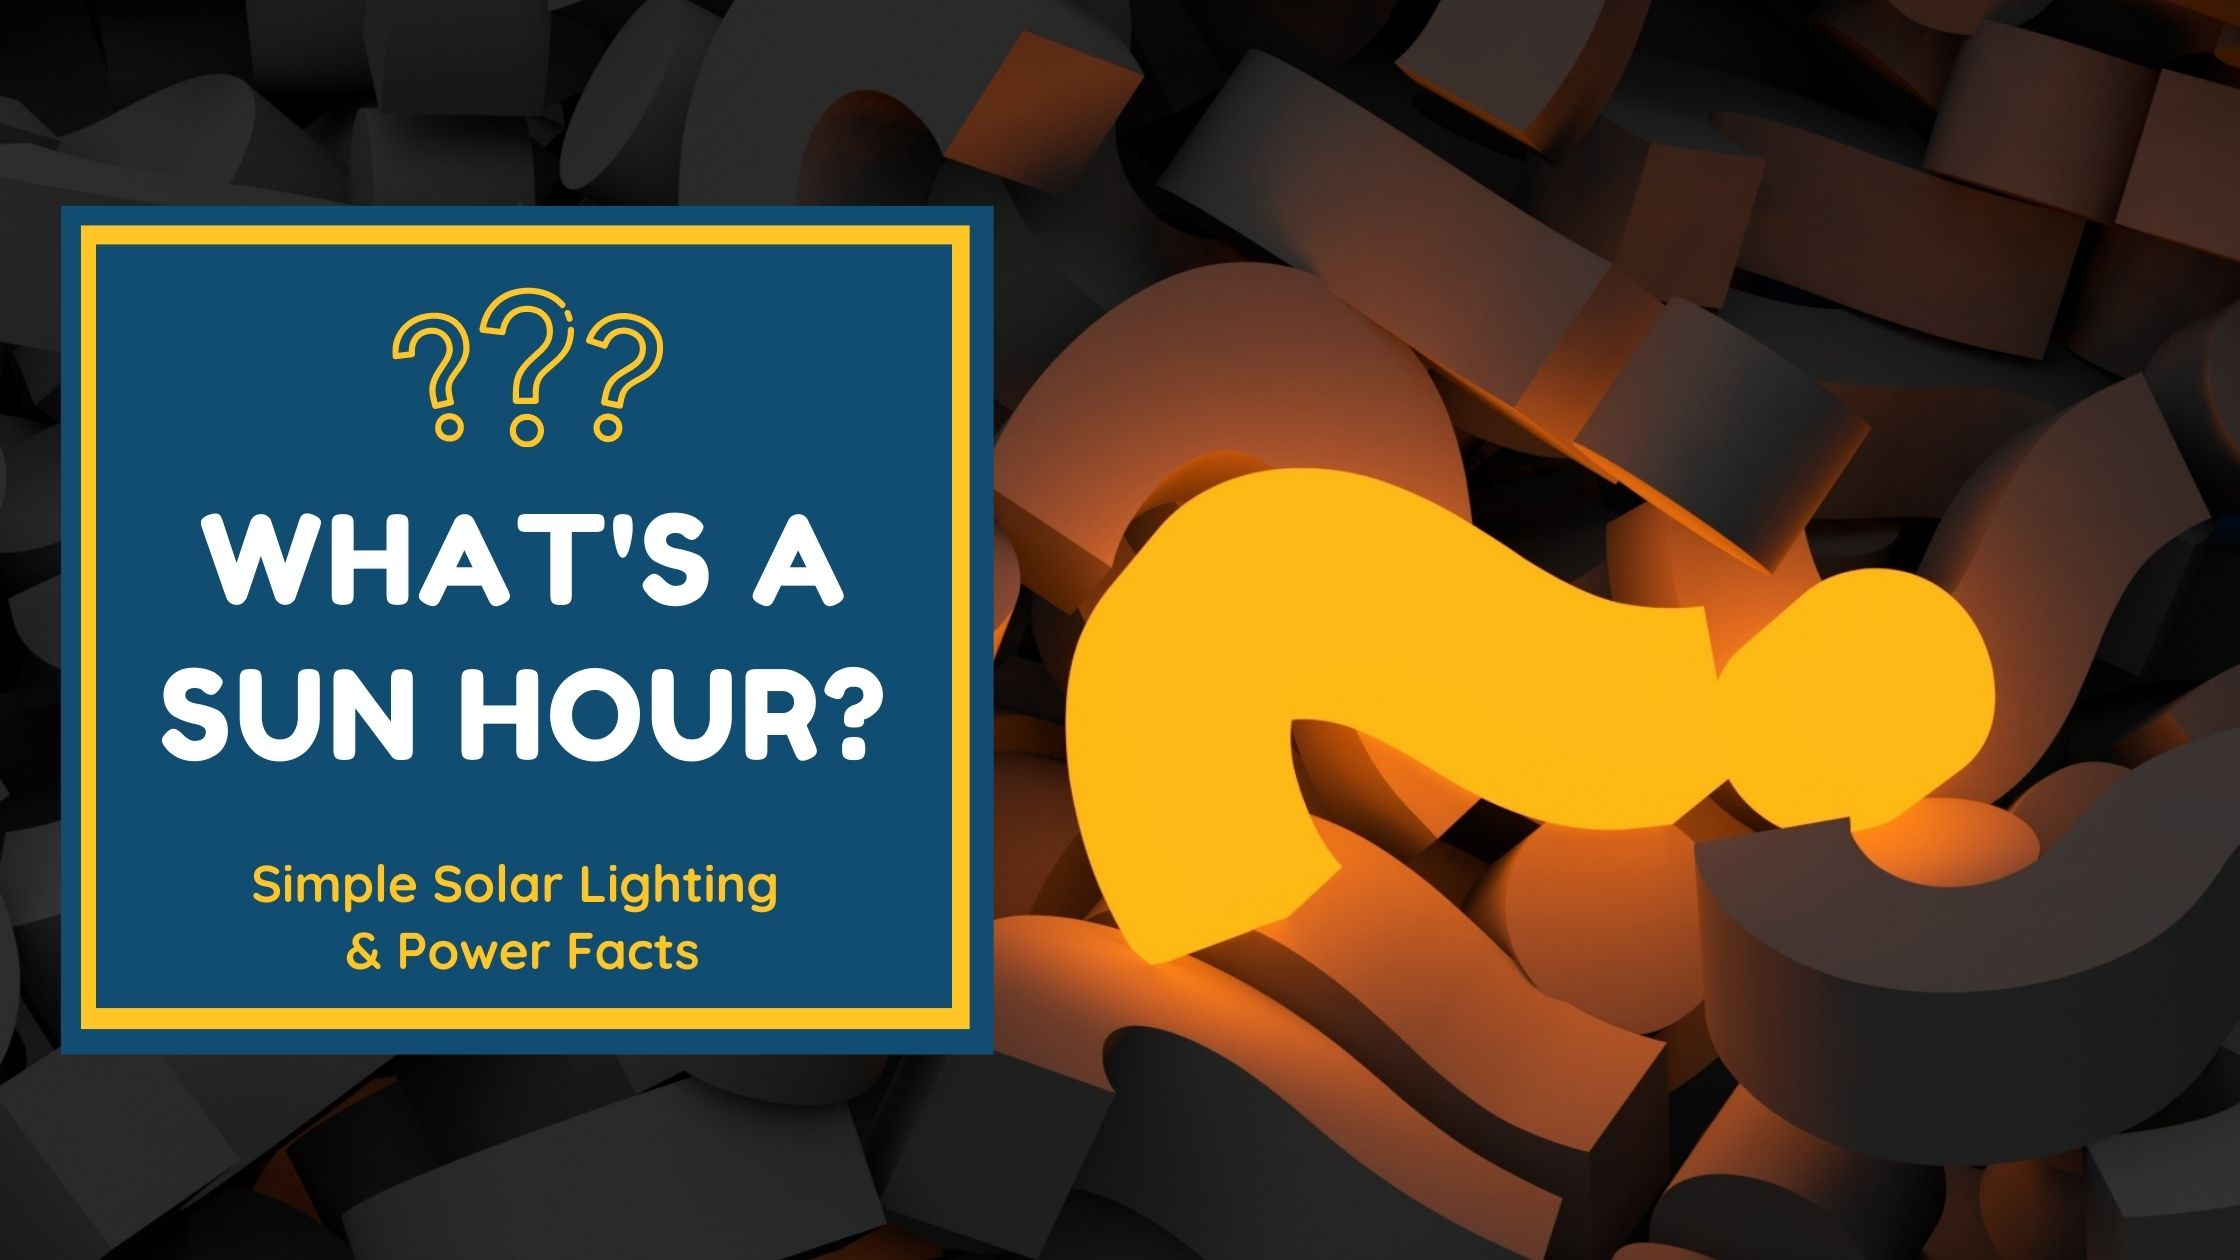 Simple Solar Lighting and Power Facts – What is a Sun Hour